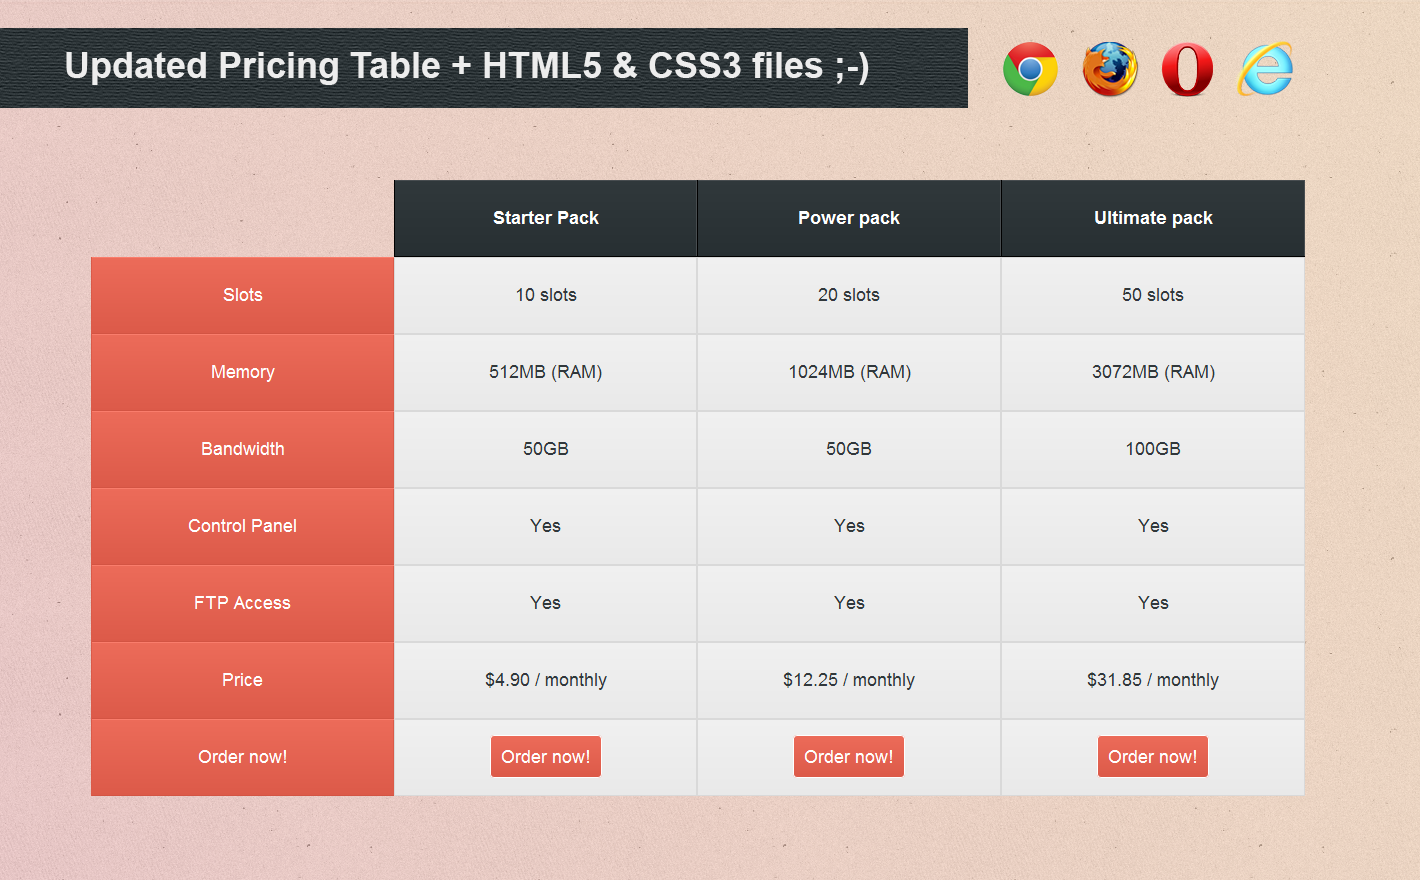 pricing table update html5 css3 files by torteen on